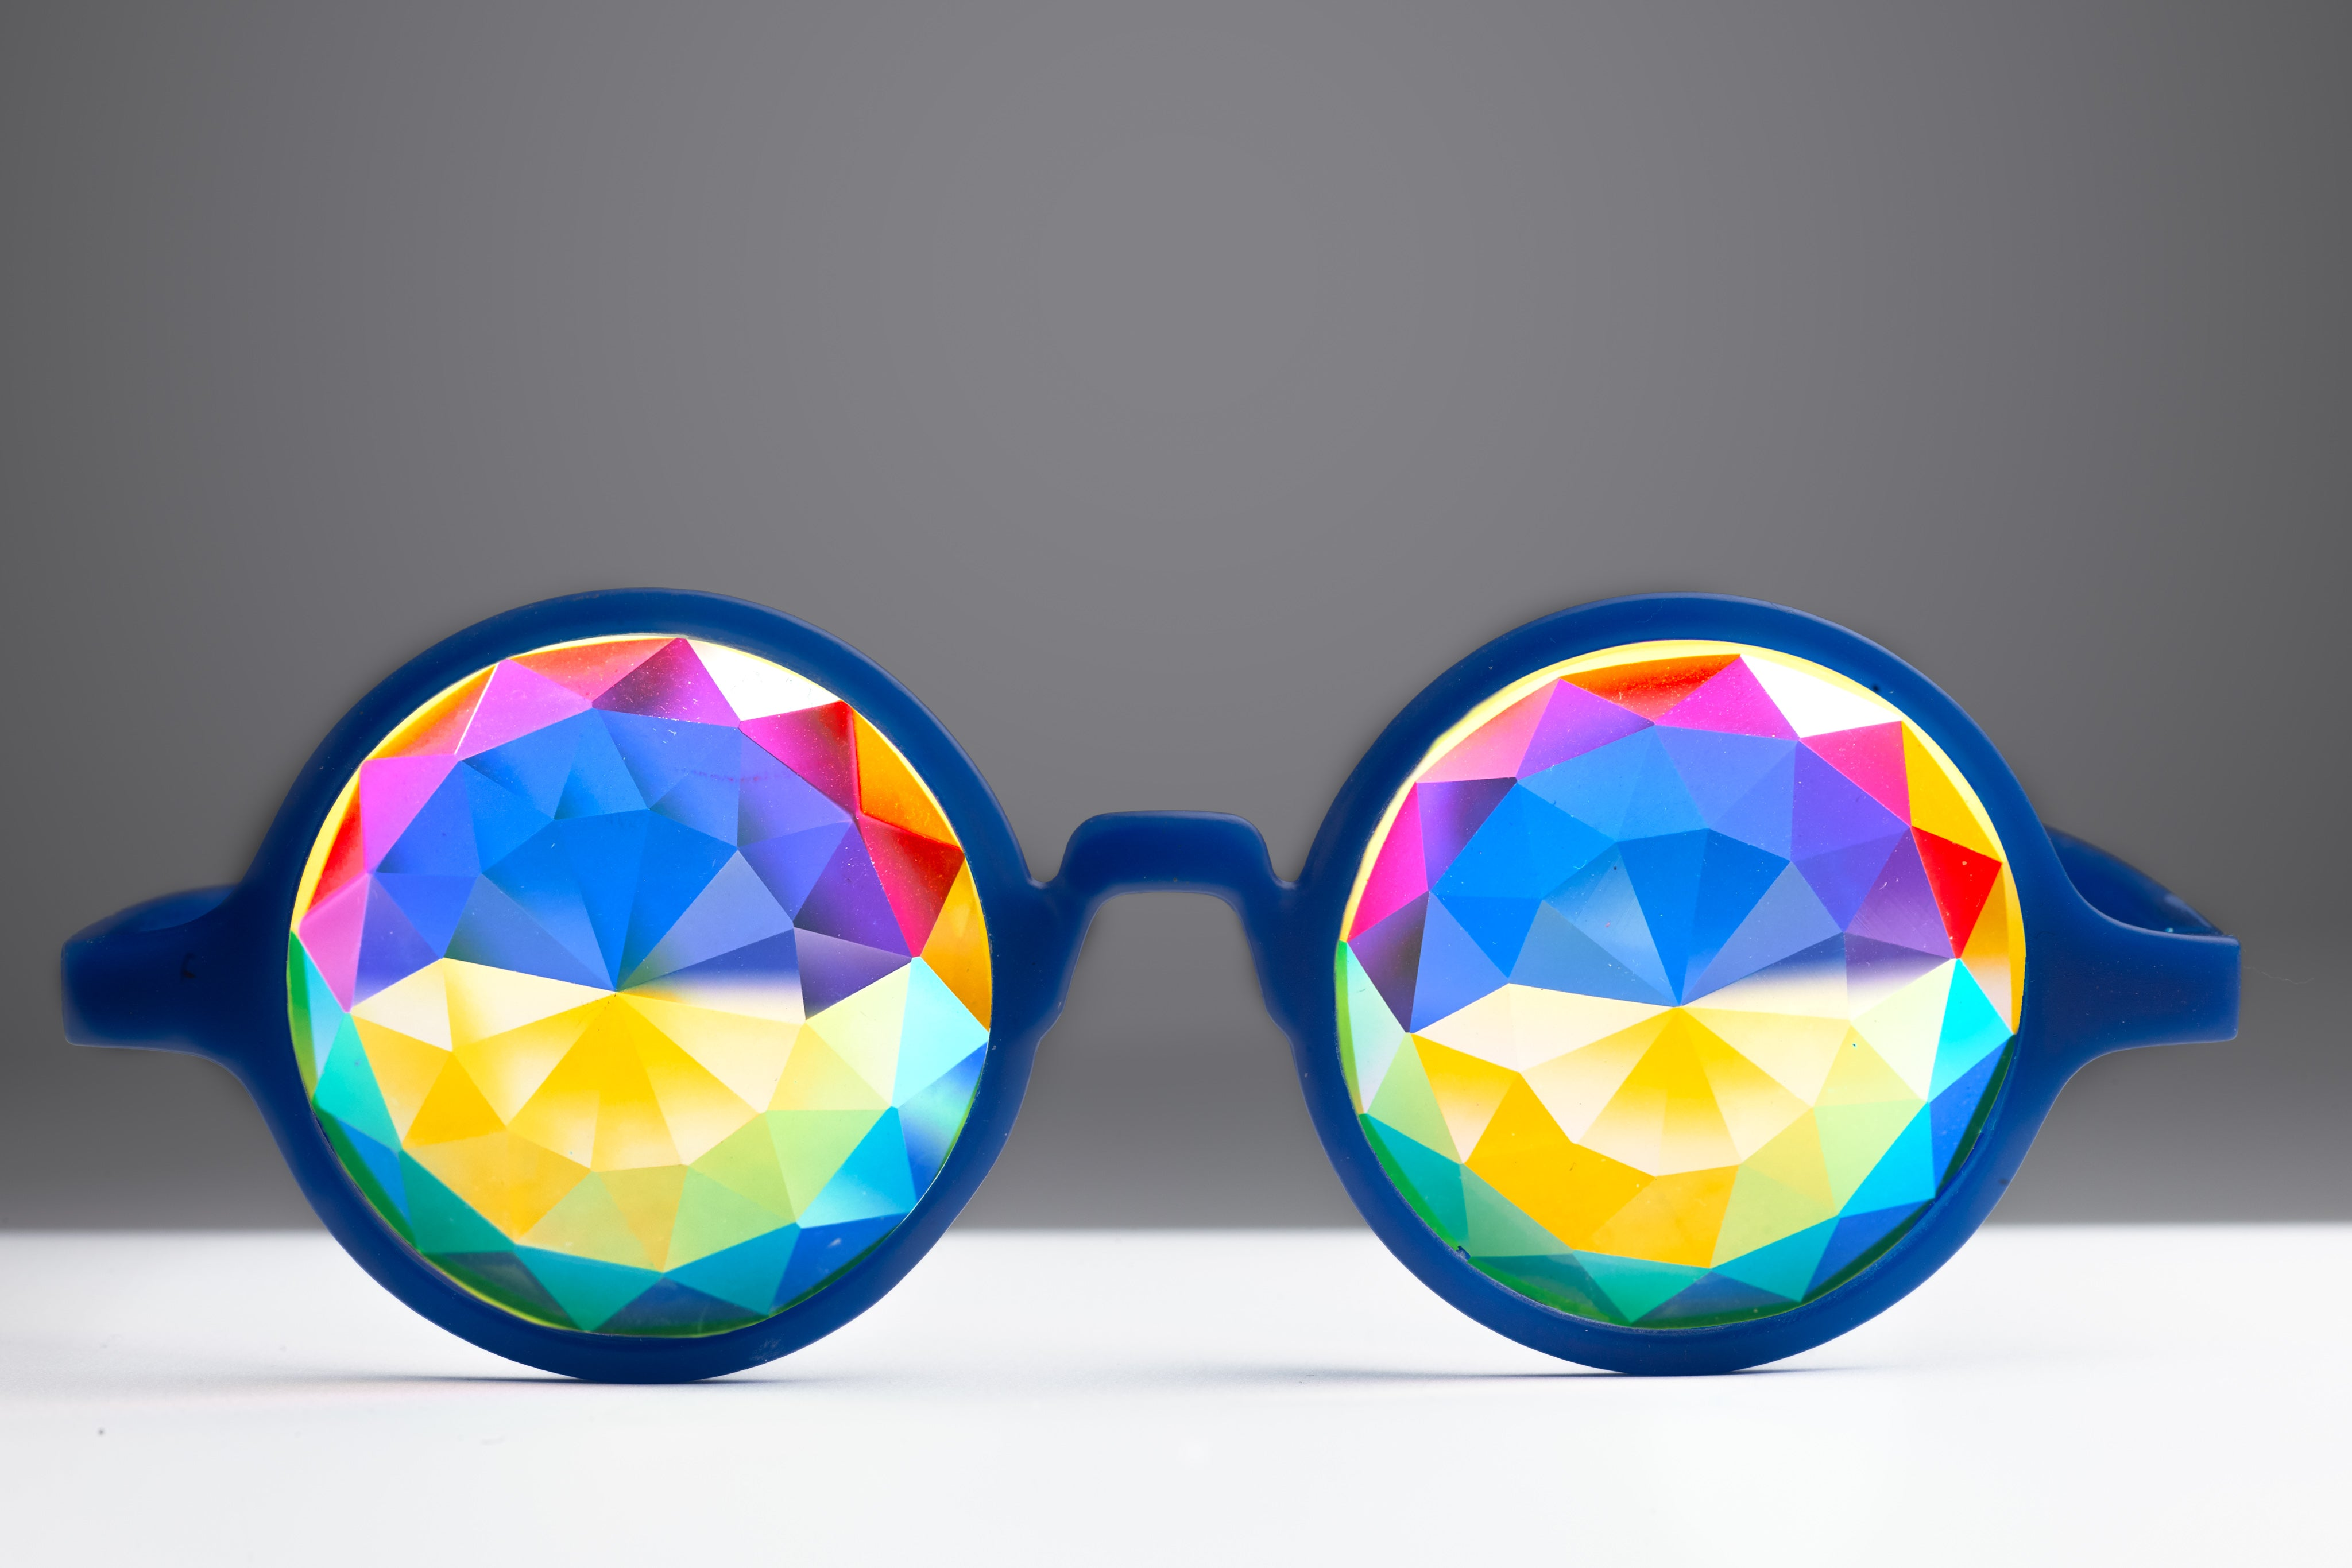 Glow Blue Diamond Kaleidoscope Glasses - SuperFried